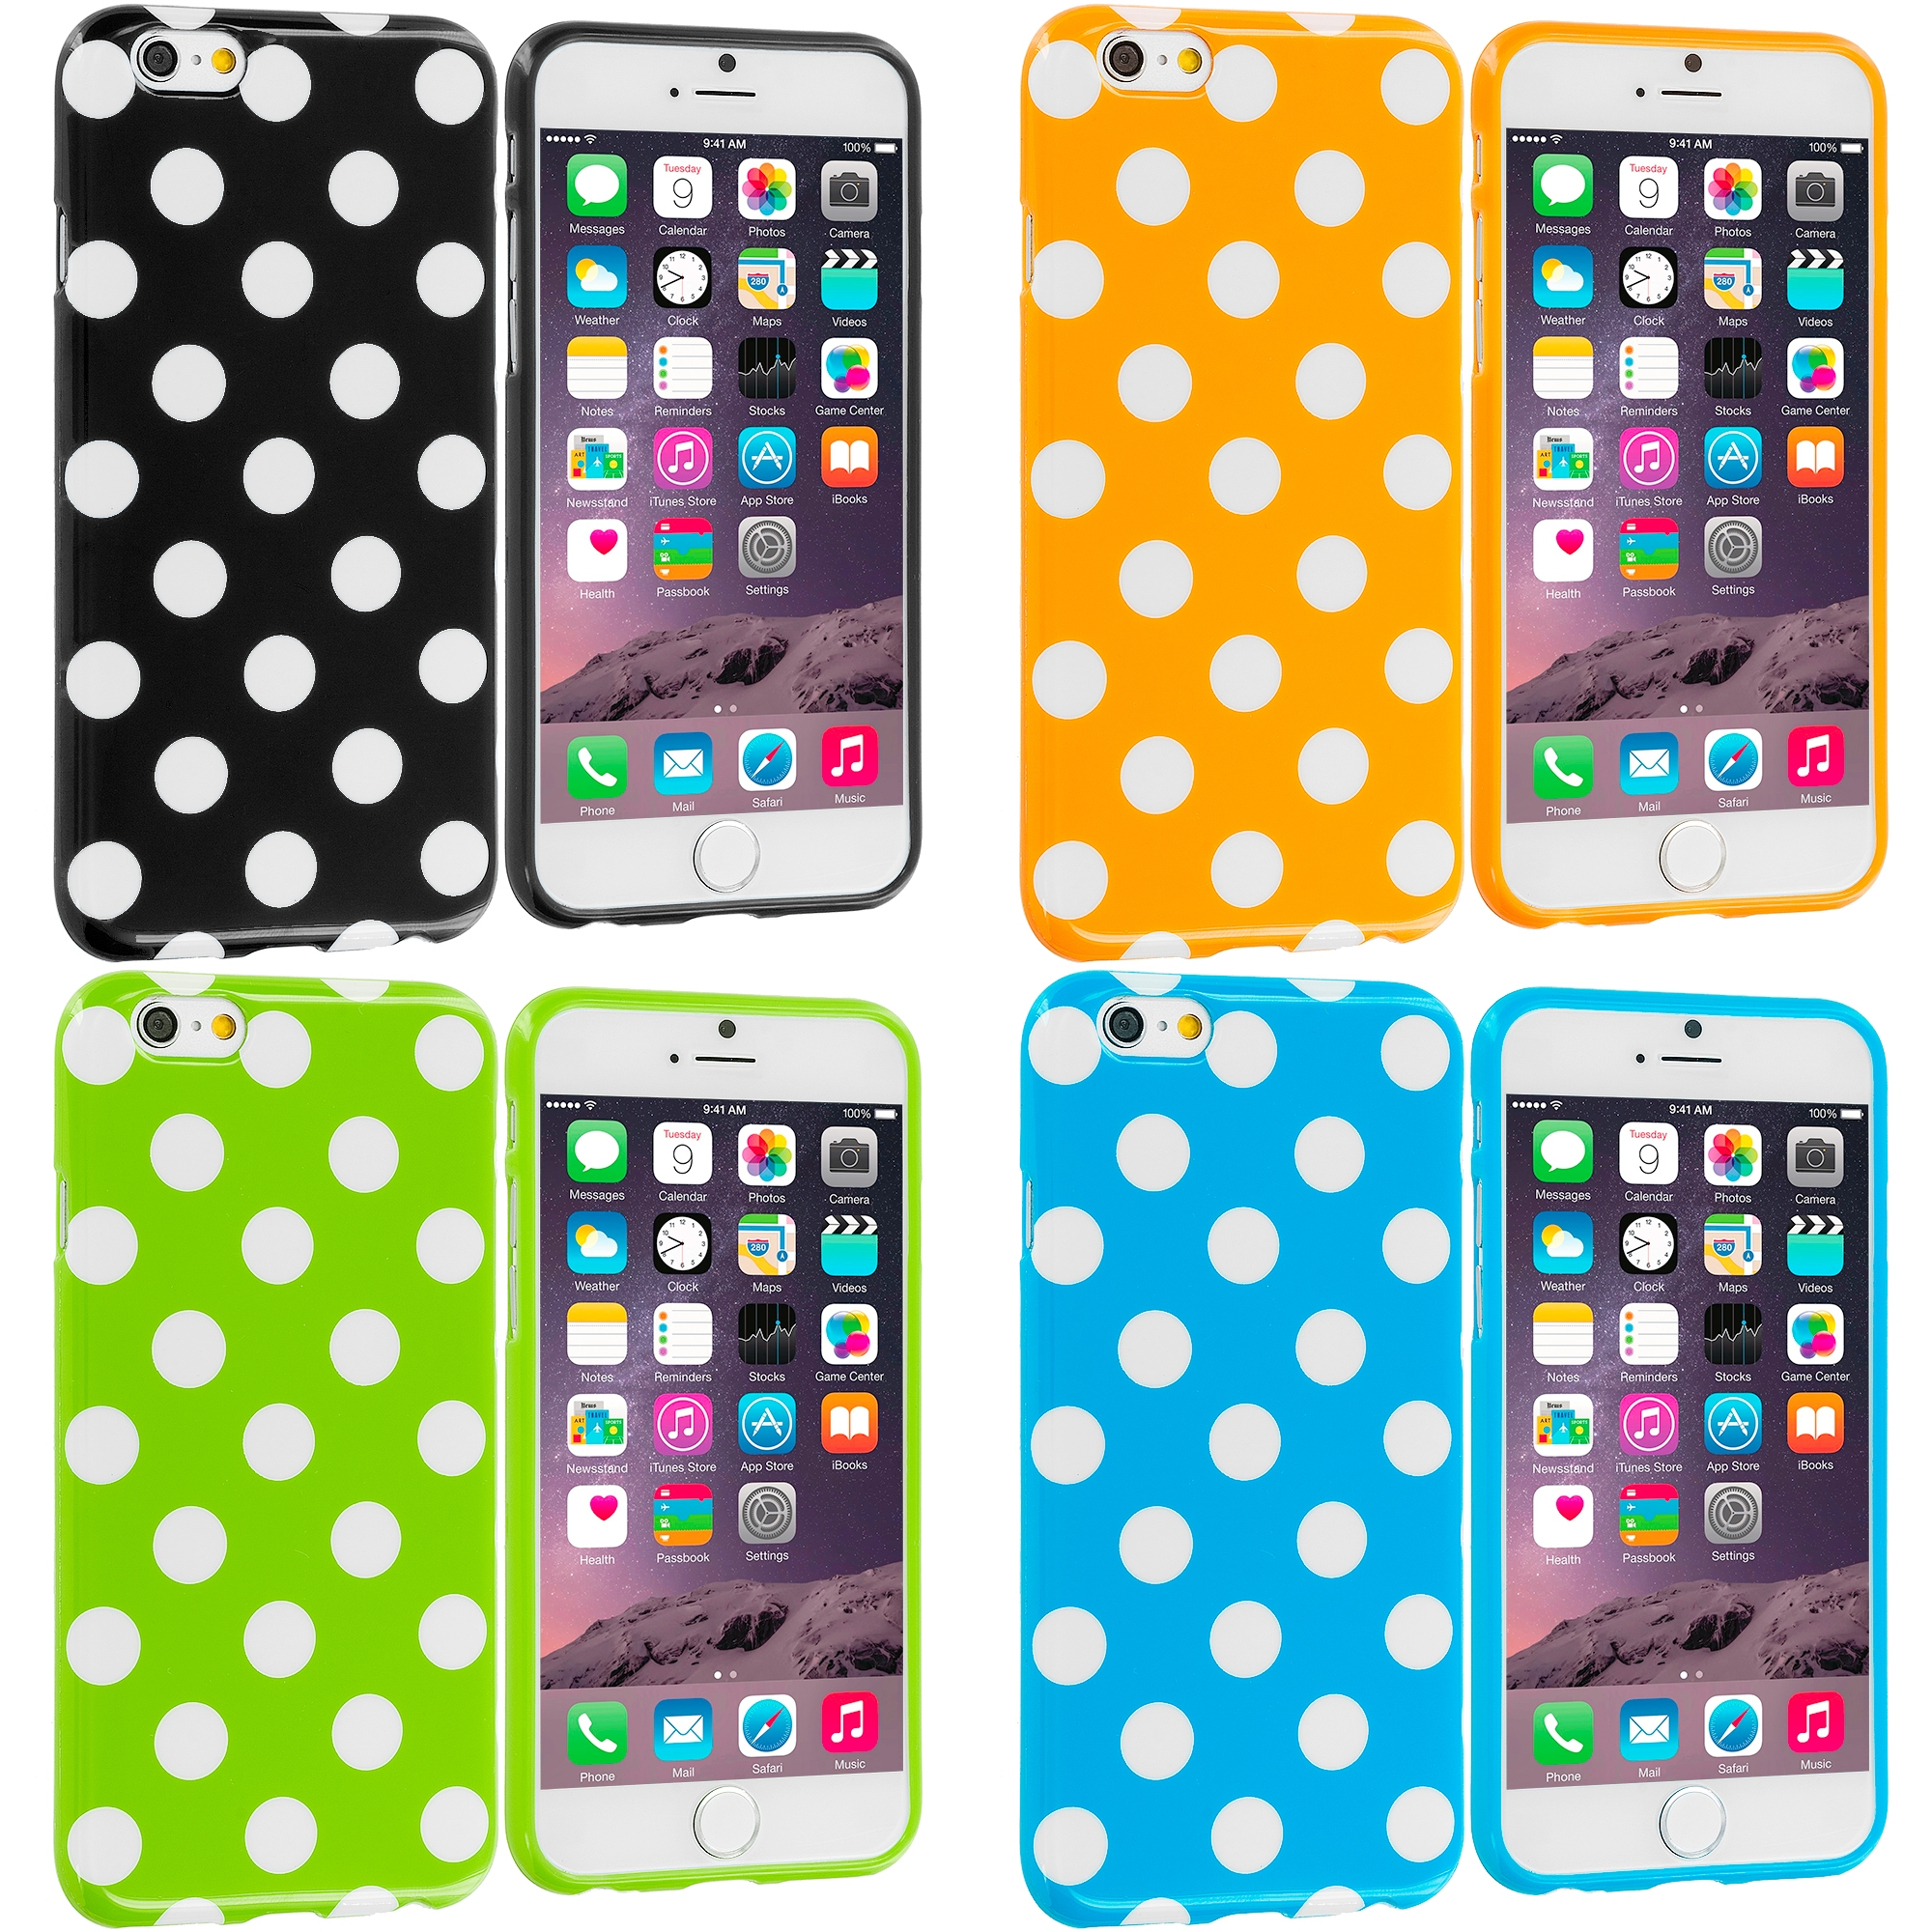 Apple iPhone 6 Plus 6S Plus (5.5) 4 in 1 Combo Bundle Pack - TPU Polka Dot Skin Case Cover